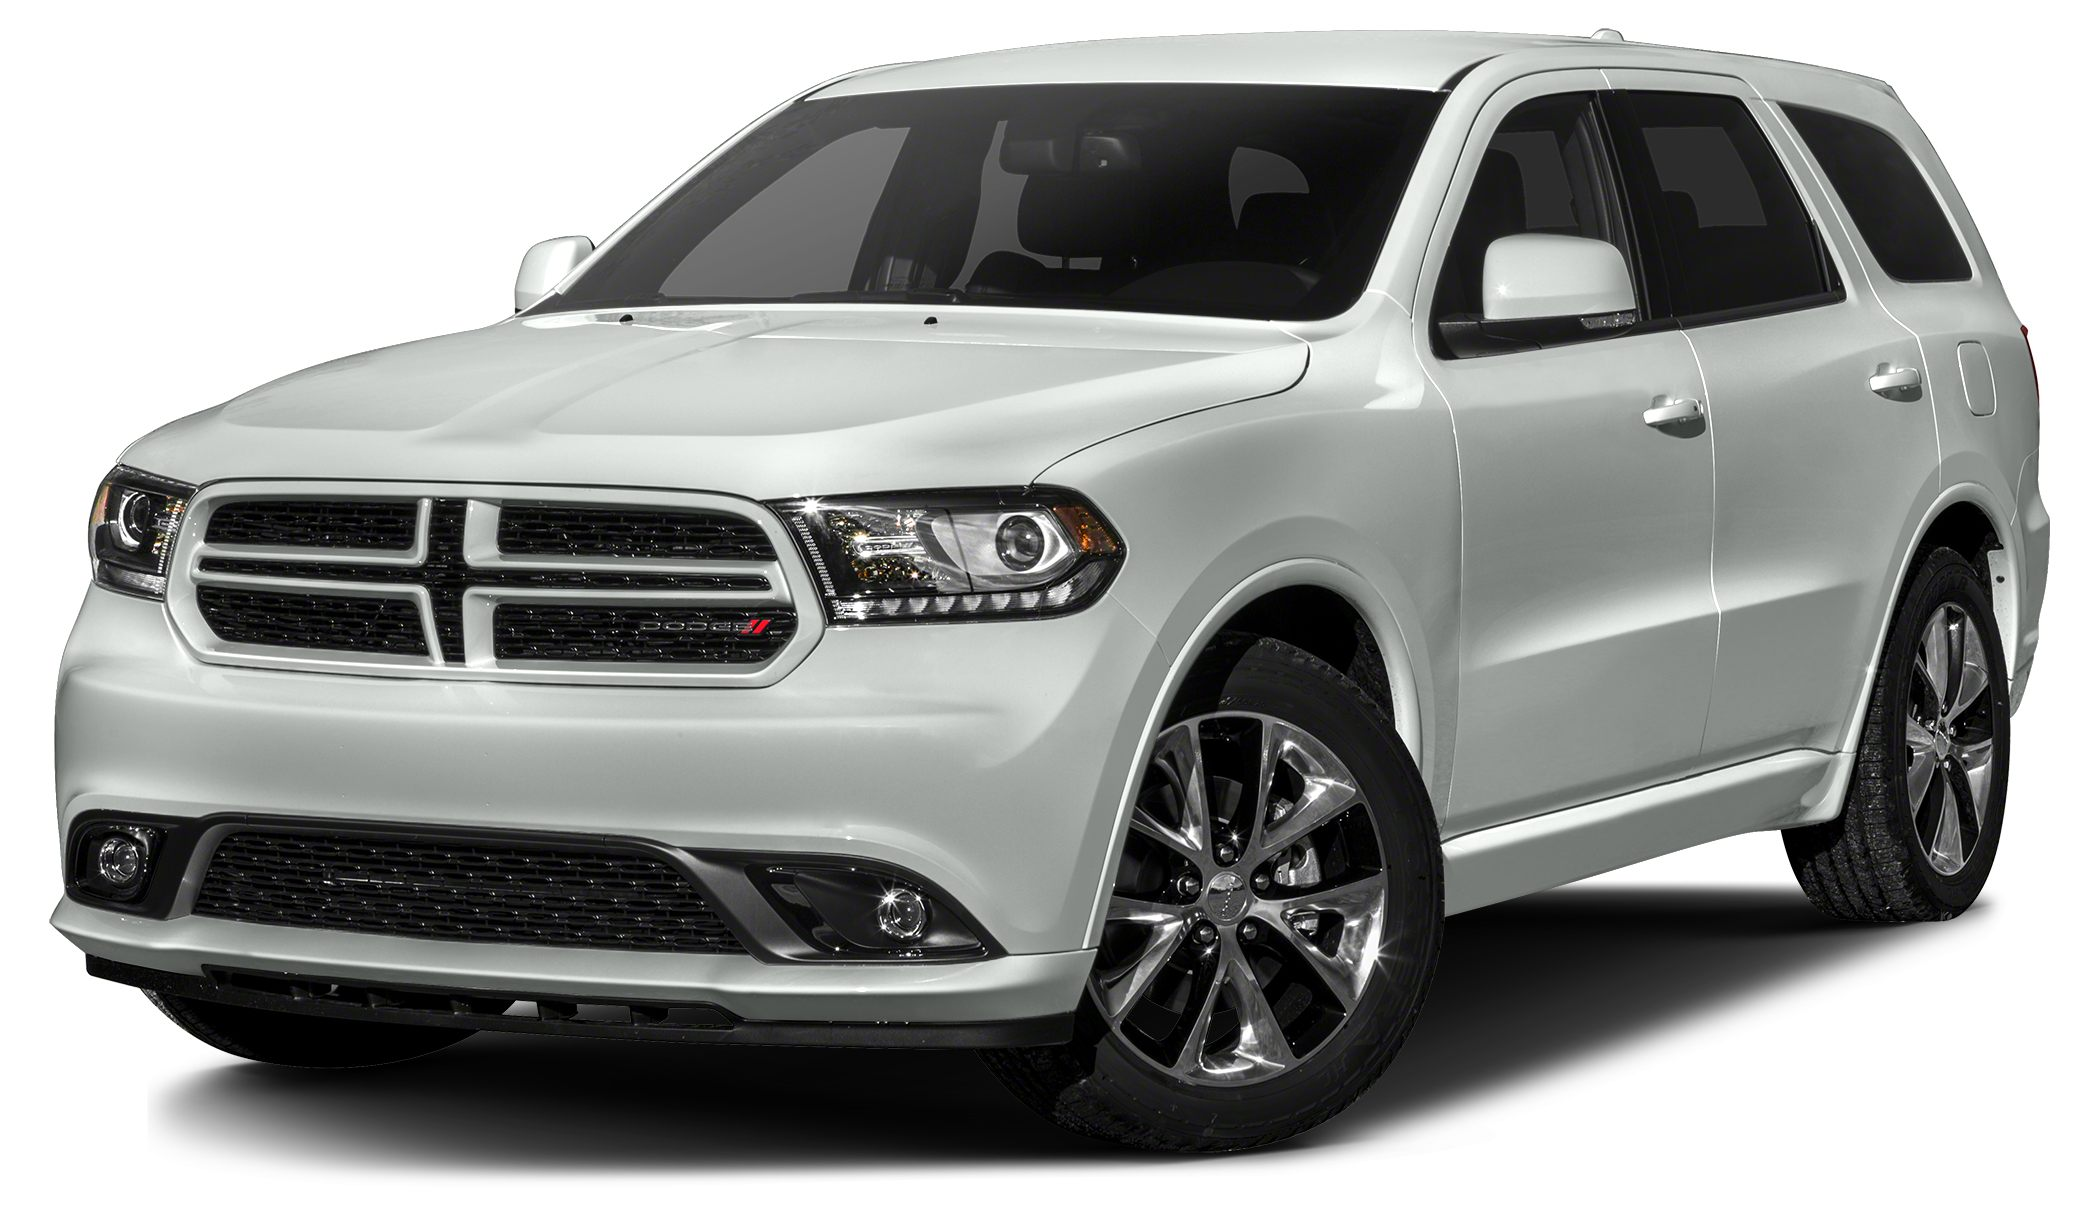 2014 Dodge Durango RT Vehicle Detailed Recent Oil Change and Passed Dealer Inspection Stabilit